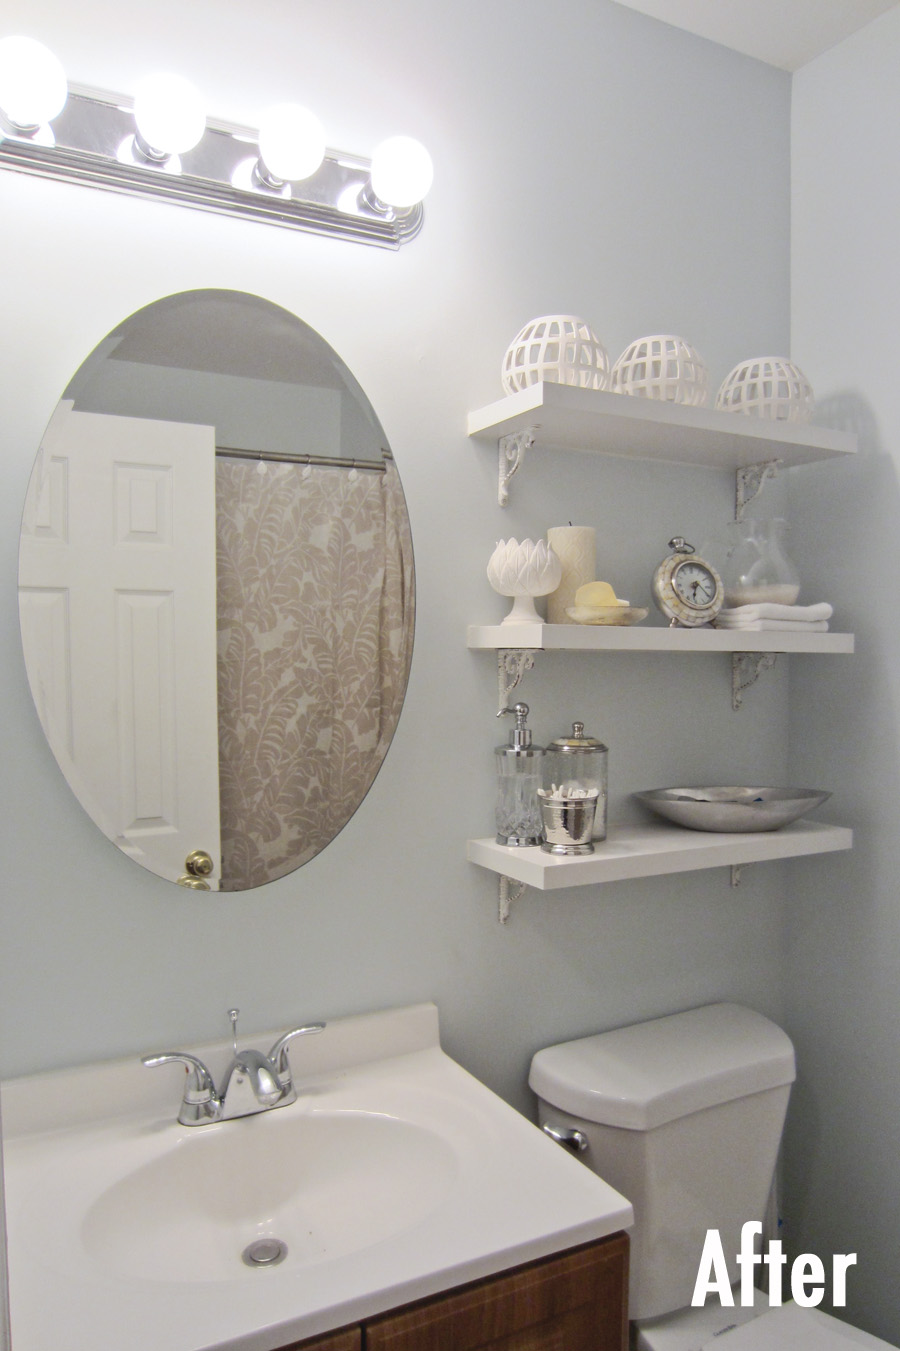 After: A thrifted medicine cabinet brings a bit of elegance to a small bathroom